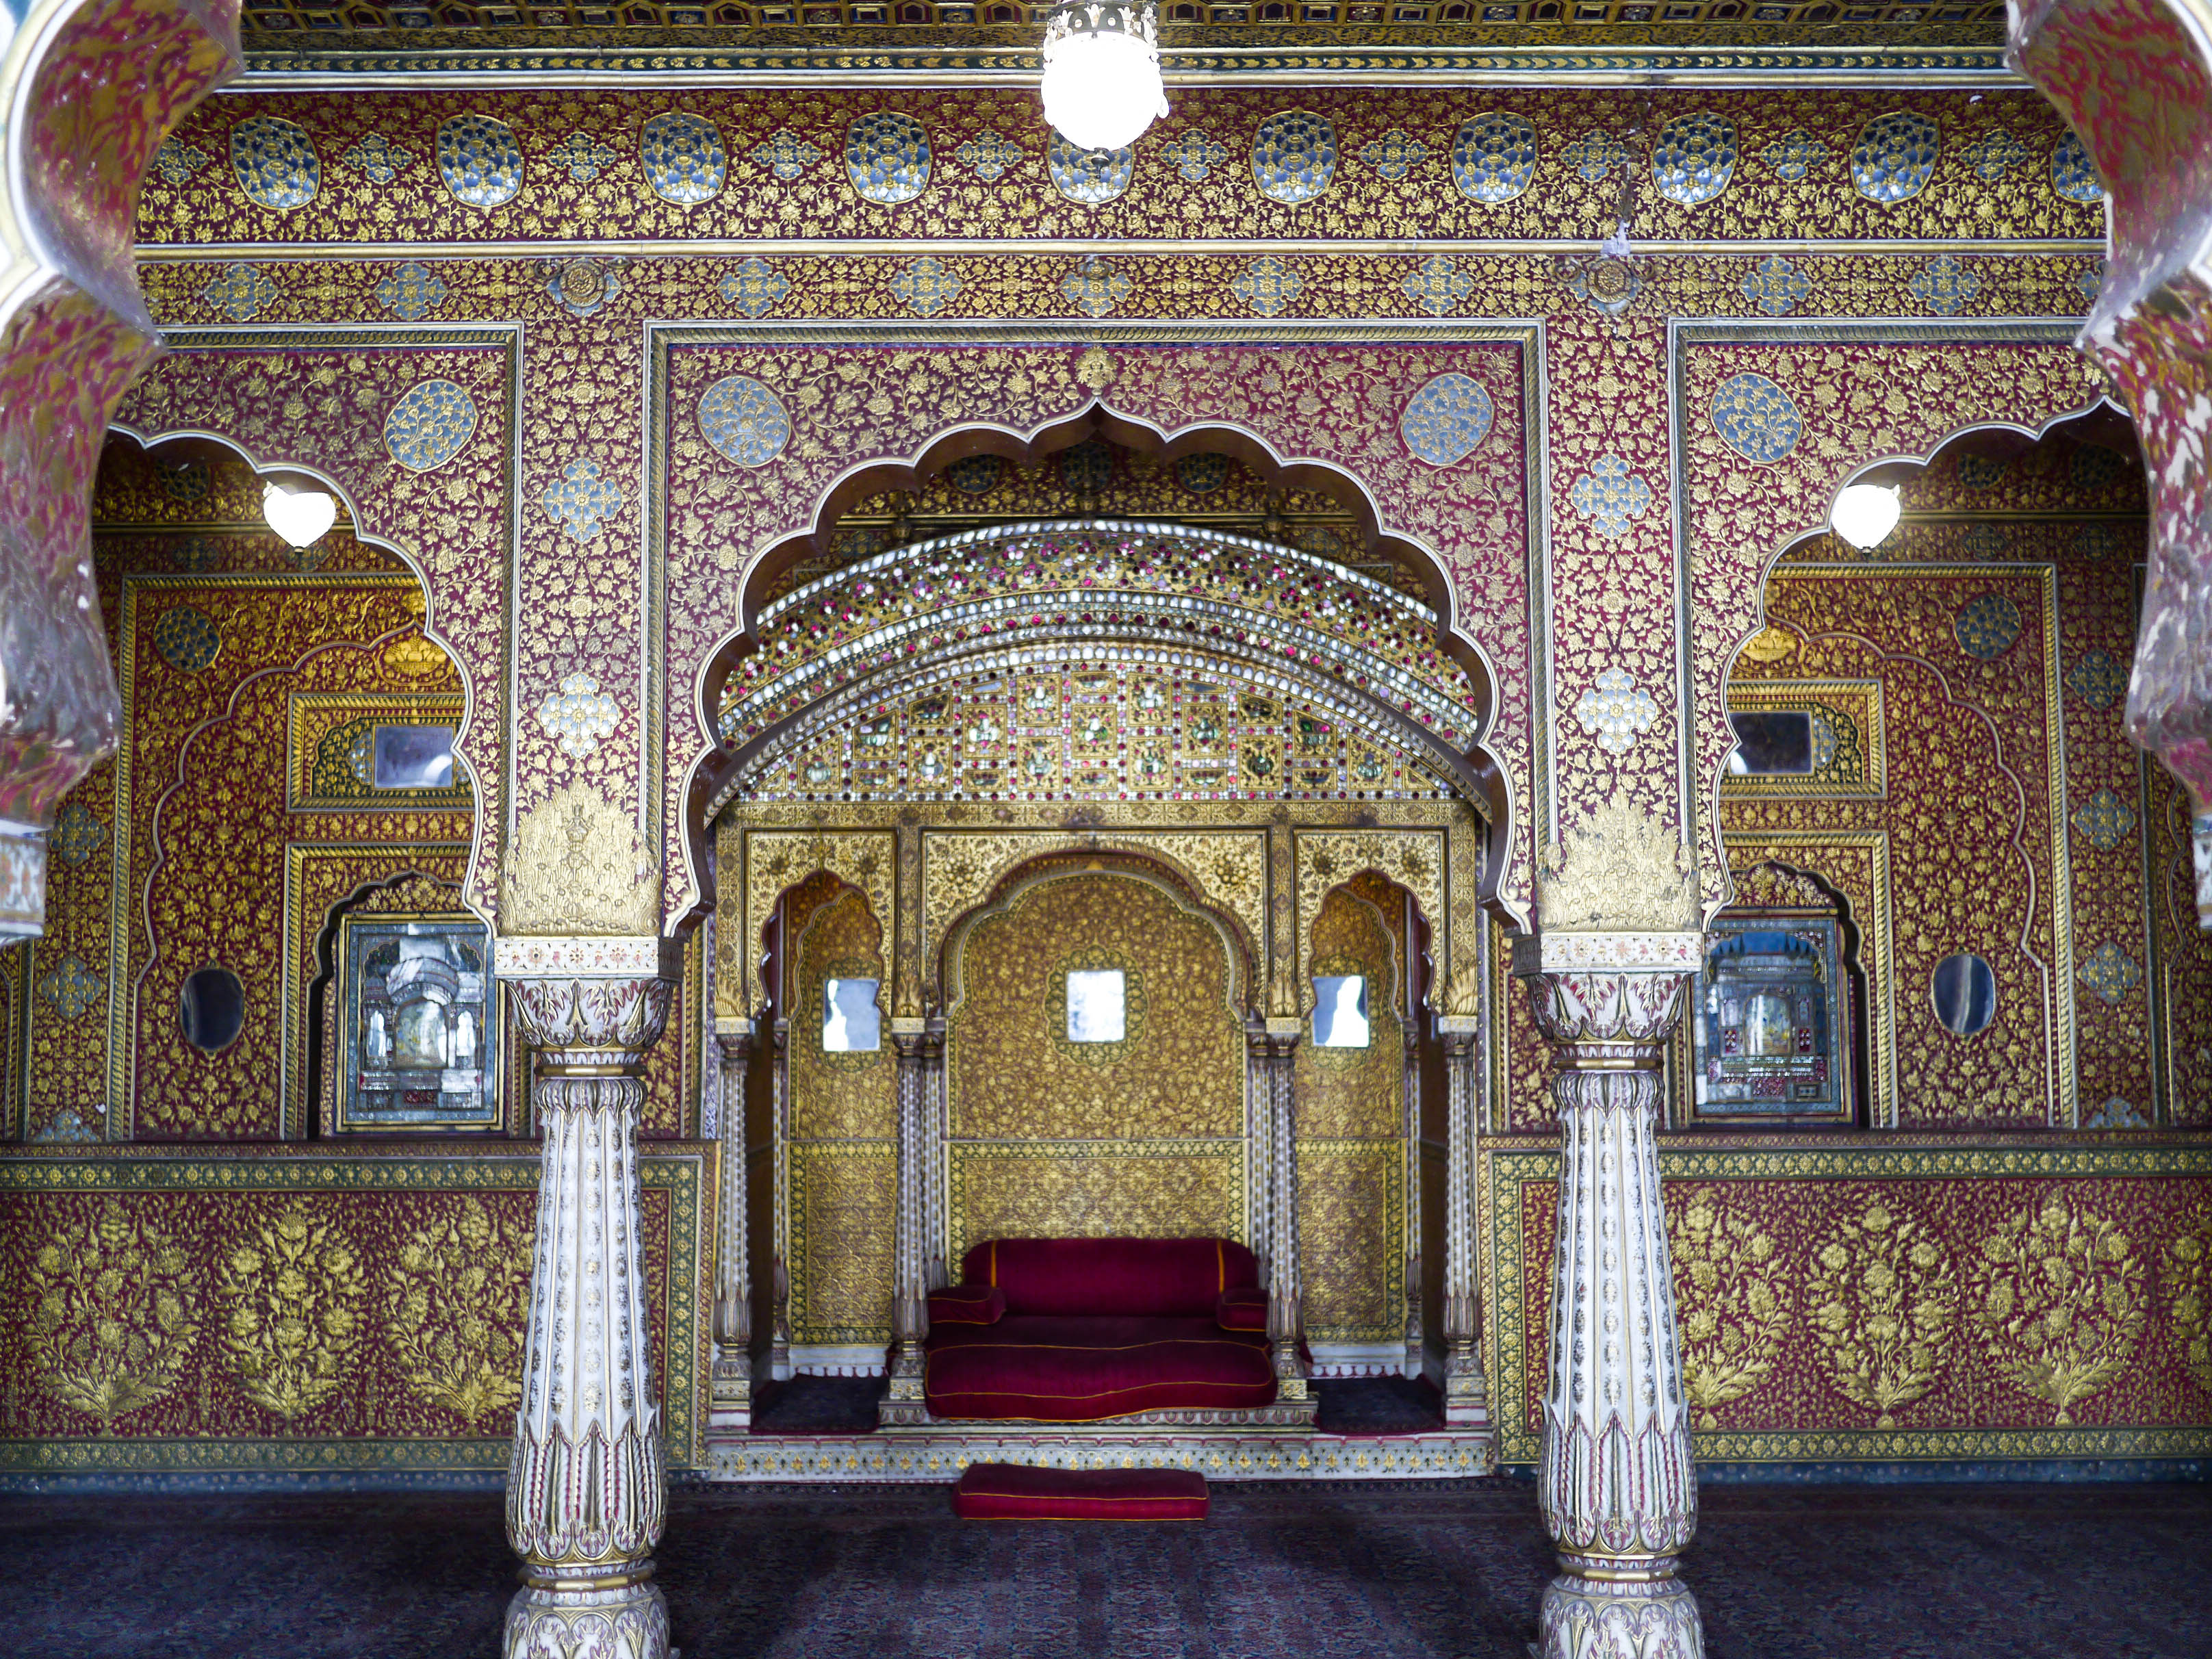 Find A Code >> bikaner, india - The Tale of Two TingsThe Tale of Two Tings